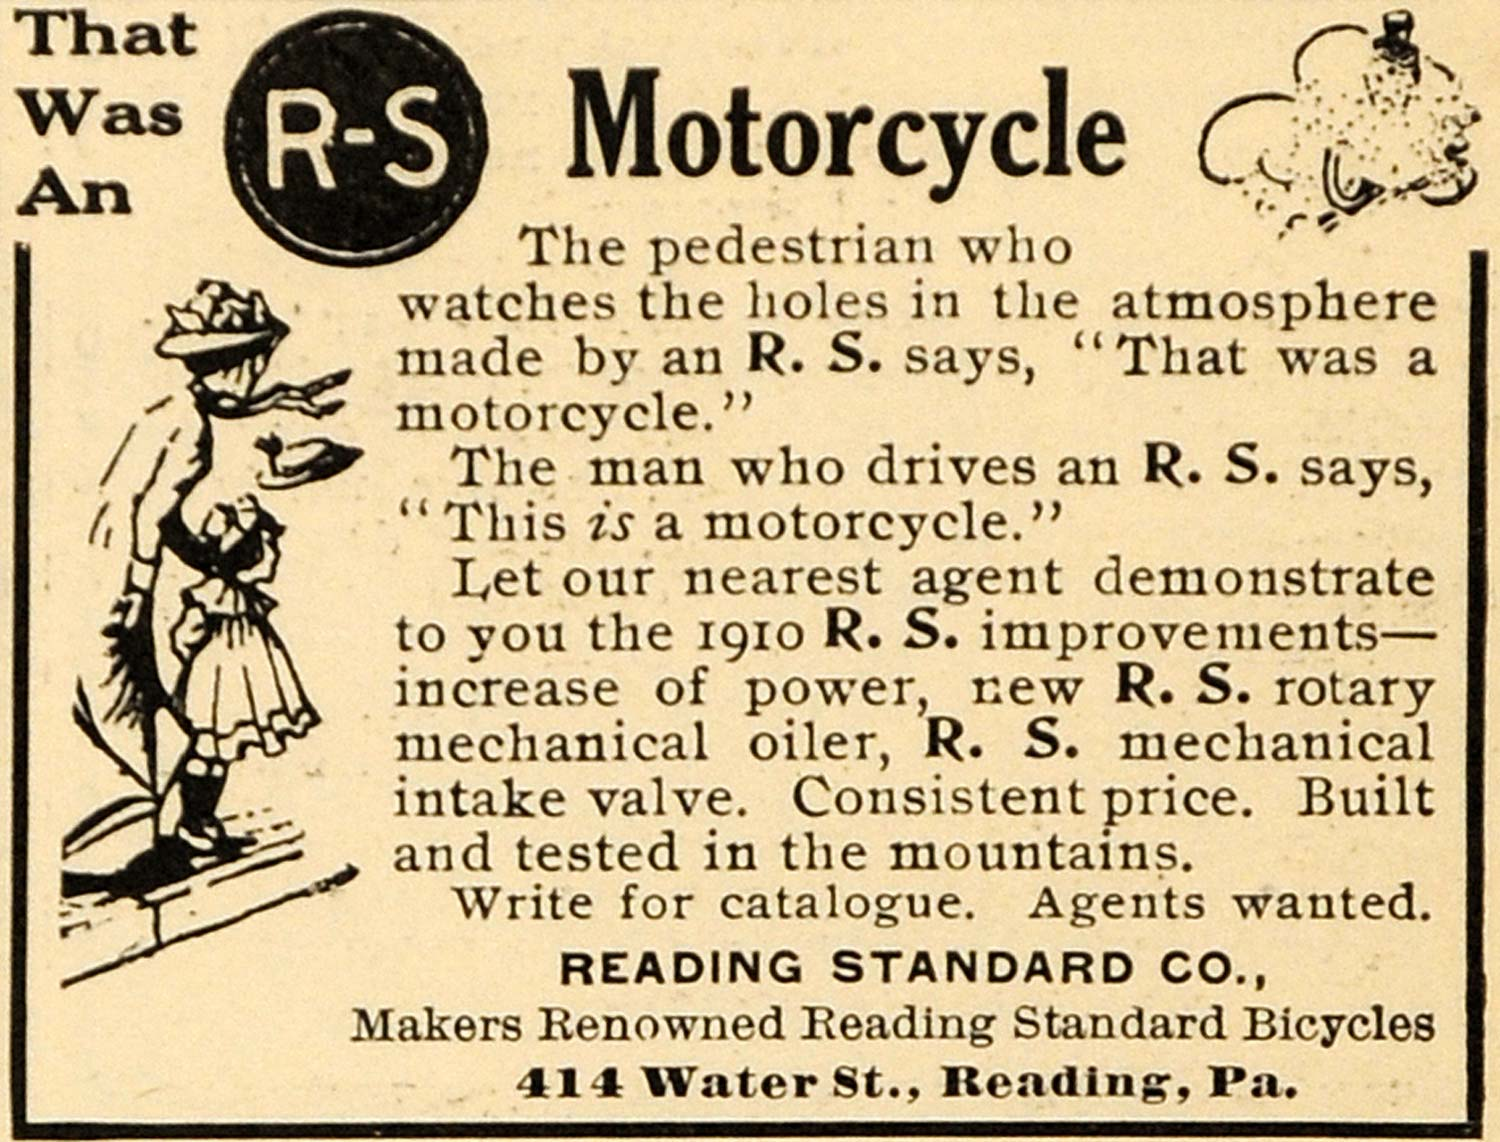 1910 Ad Reading Standard Co Motorcycle R-S Pennsylvania - ORIGINAL ARG1